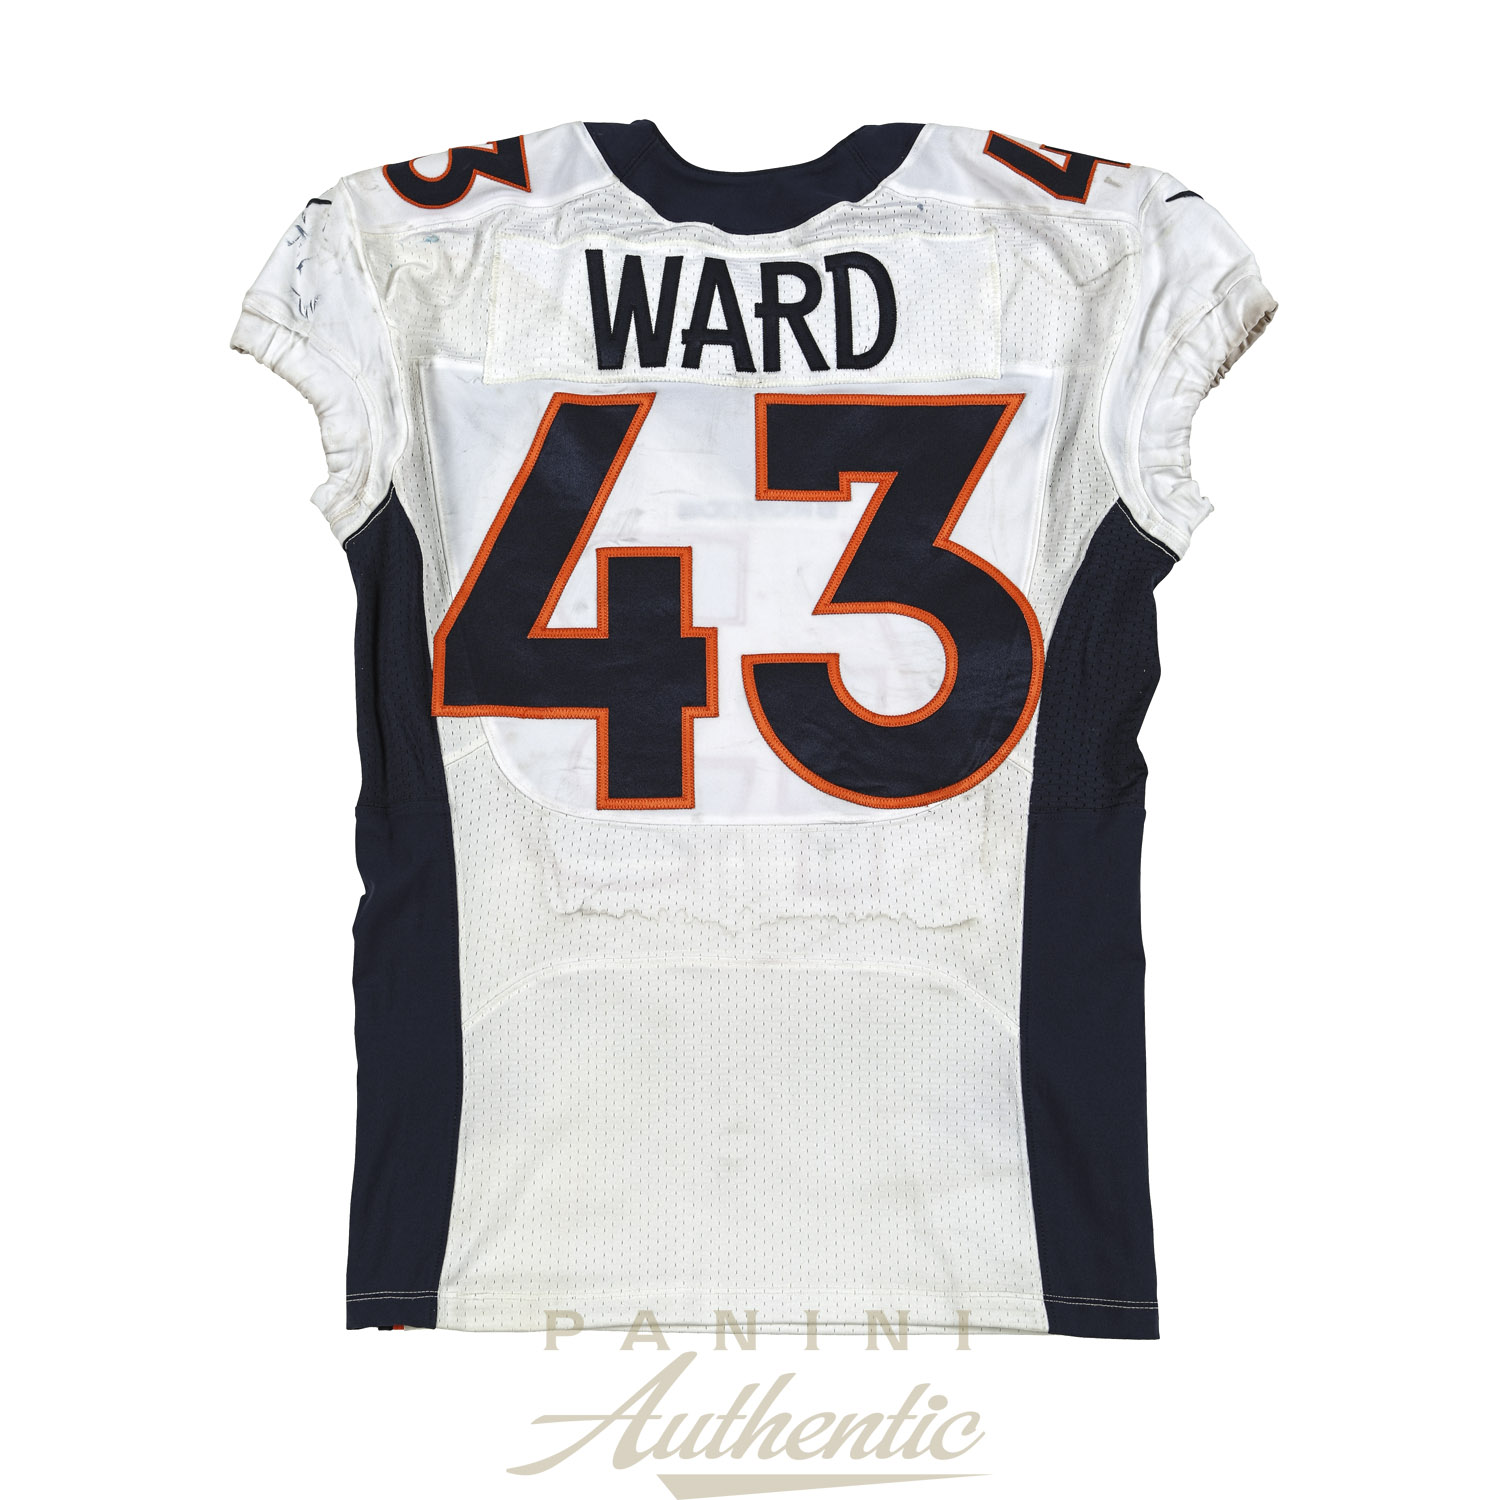 901dfe0a6 TJ Ward Game Worn Denver Broncos Jersey From 9 21 2014 vs the Seattle  Seahawks ~Limited Edition 1 1~